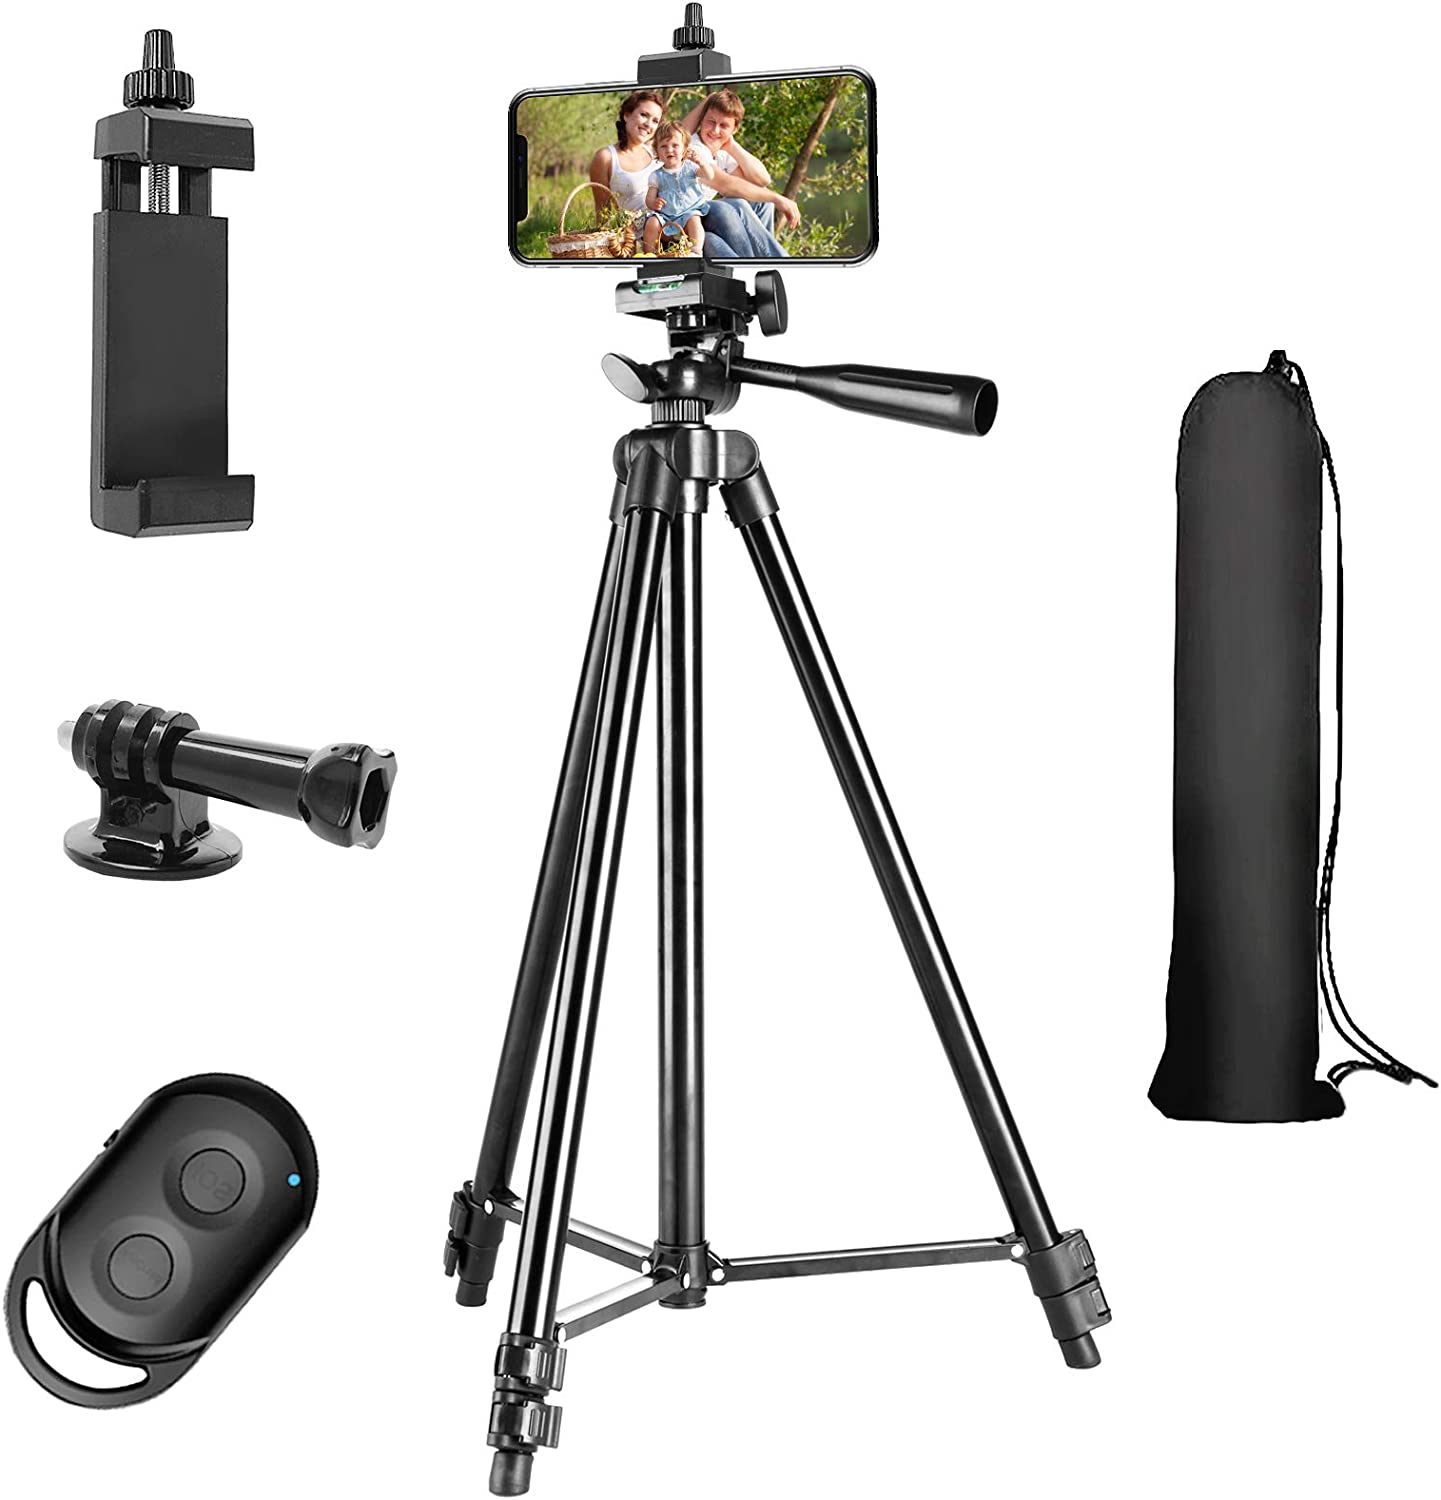 Phone Tripod, 51'' Extendable Lightweight Aluminum Phone Tripod Stand with Cell Phone Mount Holder & Wireless Remote, Tripod for iPhone/Android/Smartphone & Camera (Black)